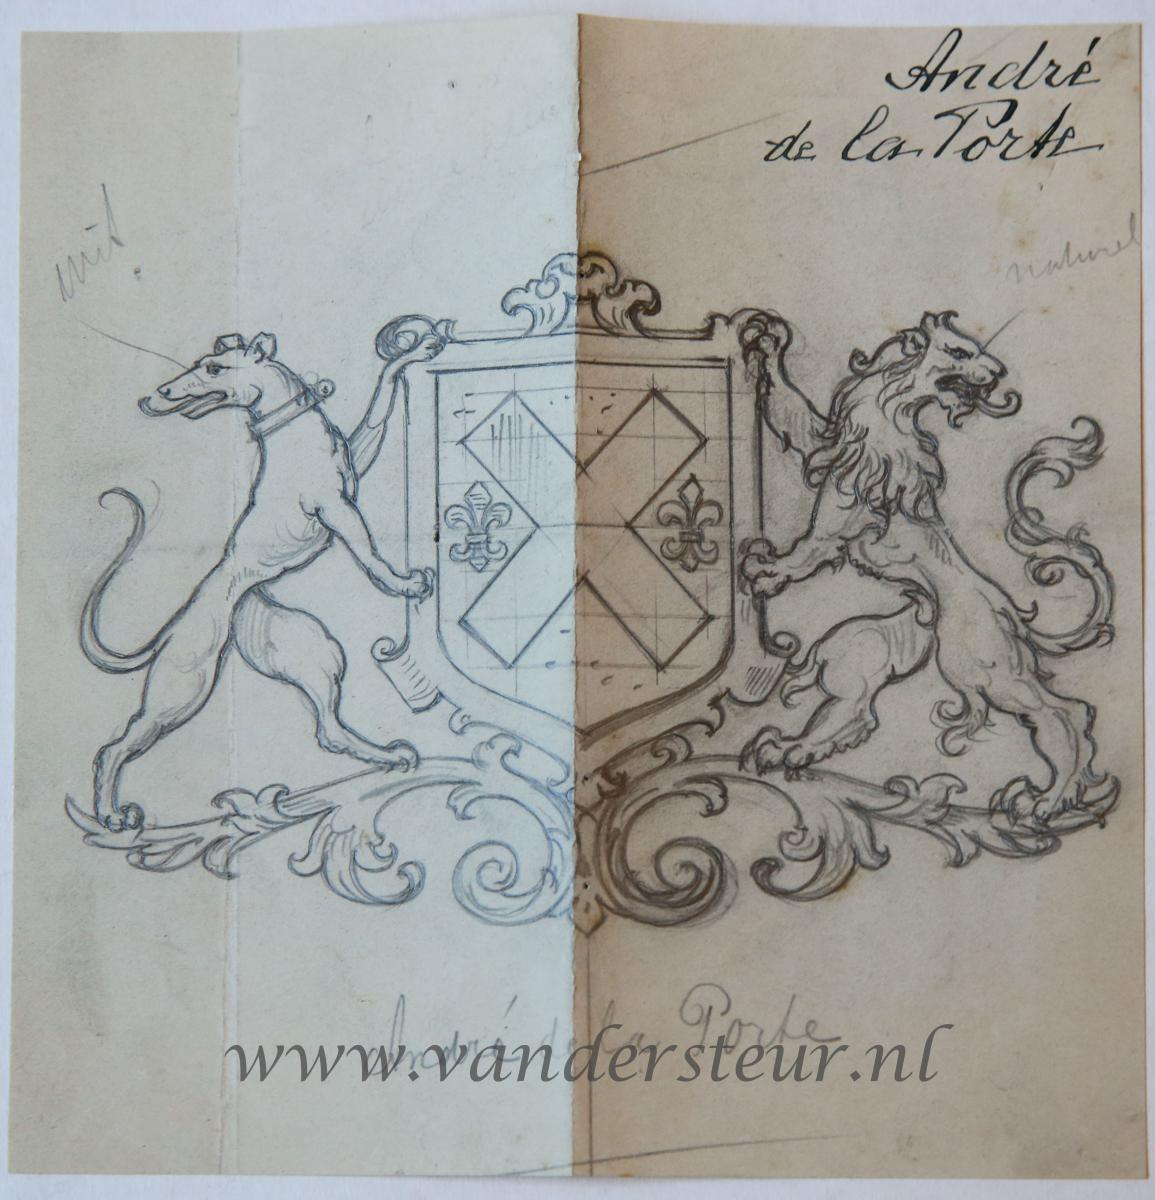 Wapenkaart/Coat of Arms: Andre de la Porte